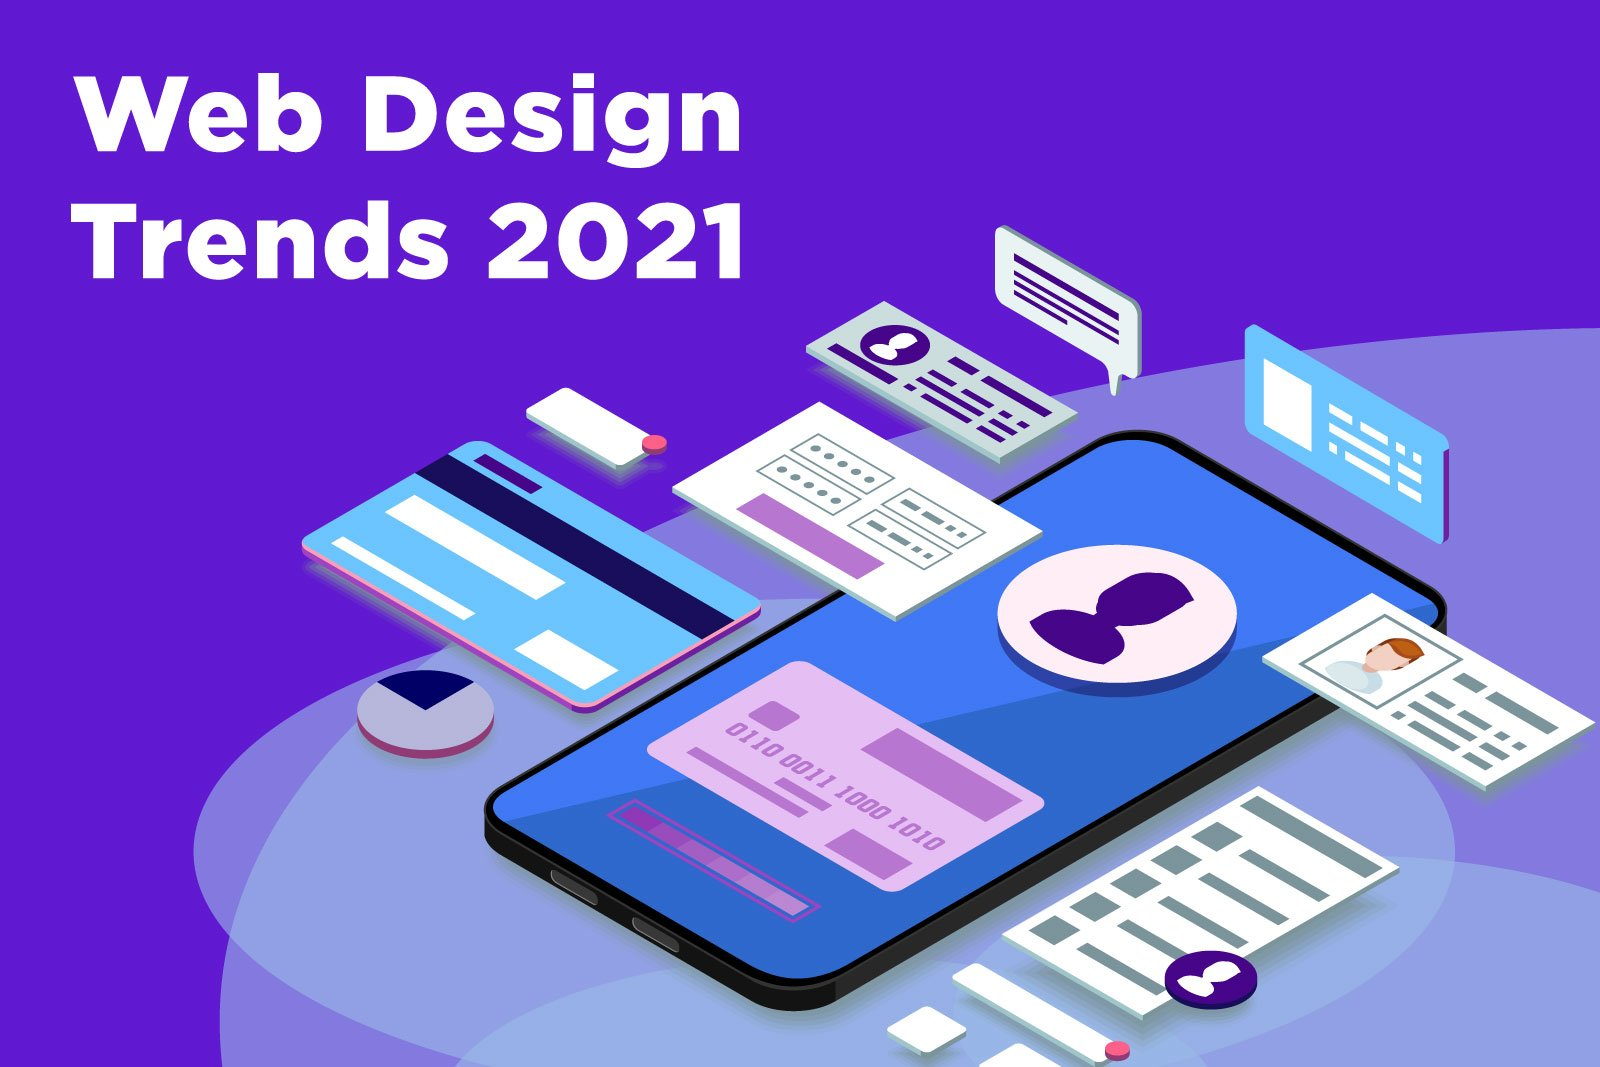 Top 10 Web Design Trends to Watch Out in 2021